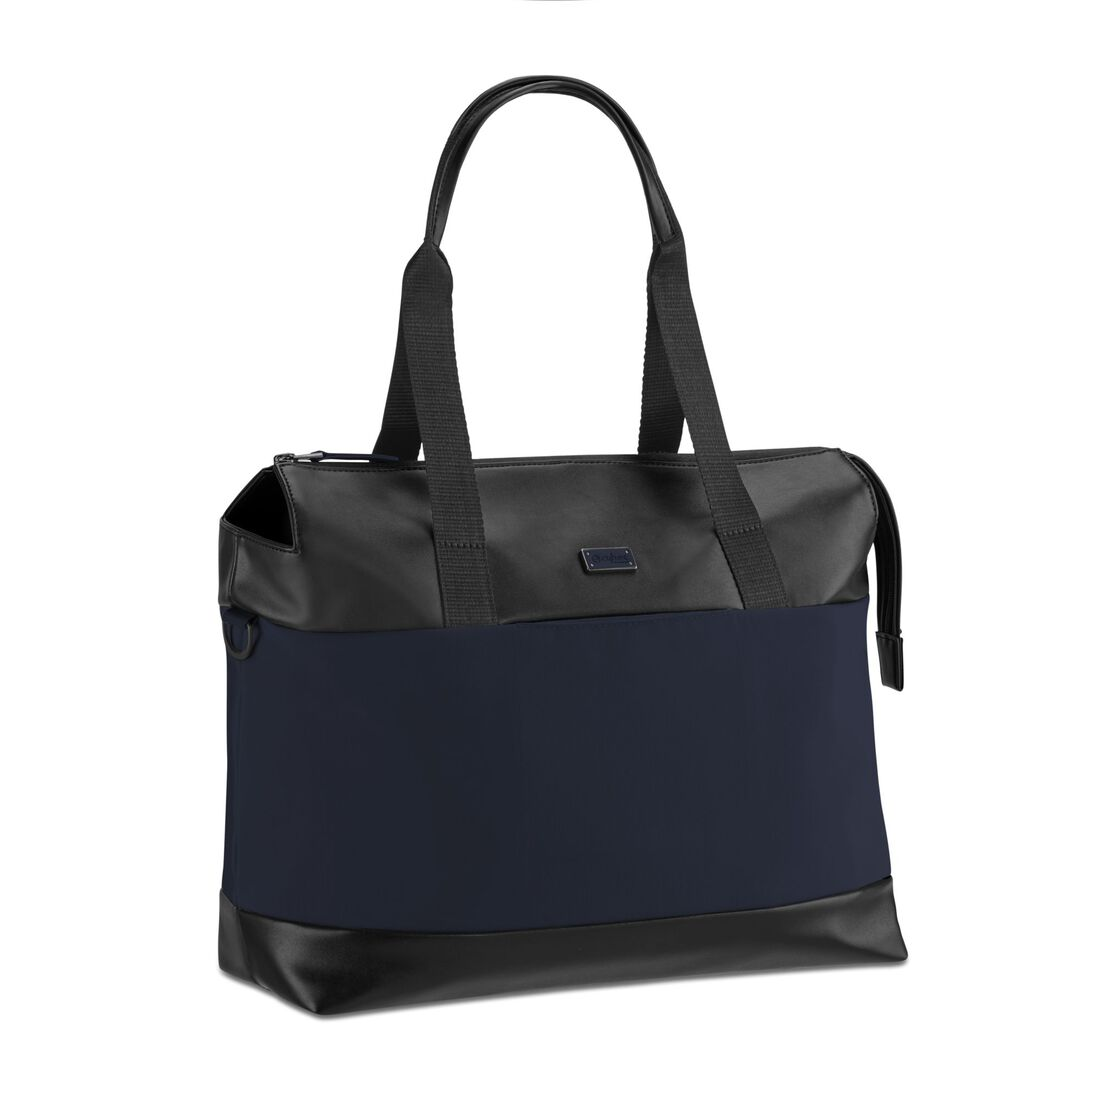 CYBEX Mios Changing Bag - Nautical Blue in Nautical Blue large image number 1